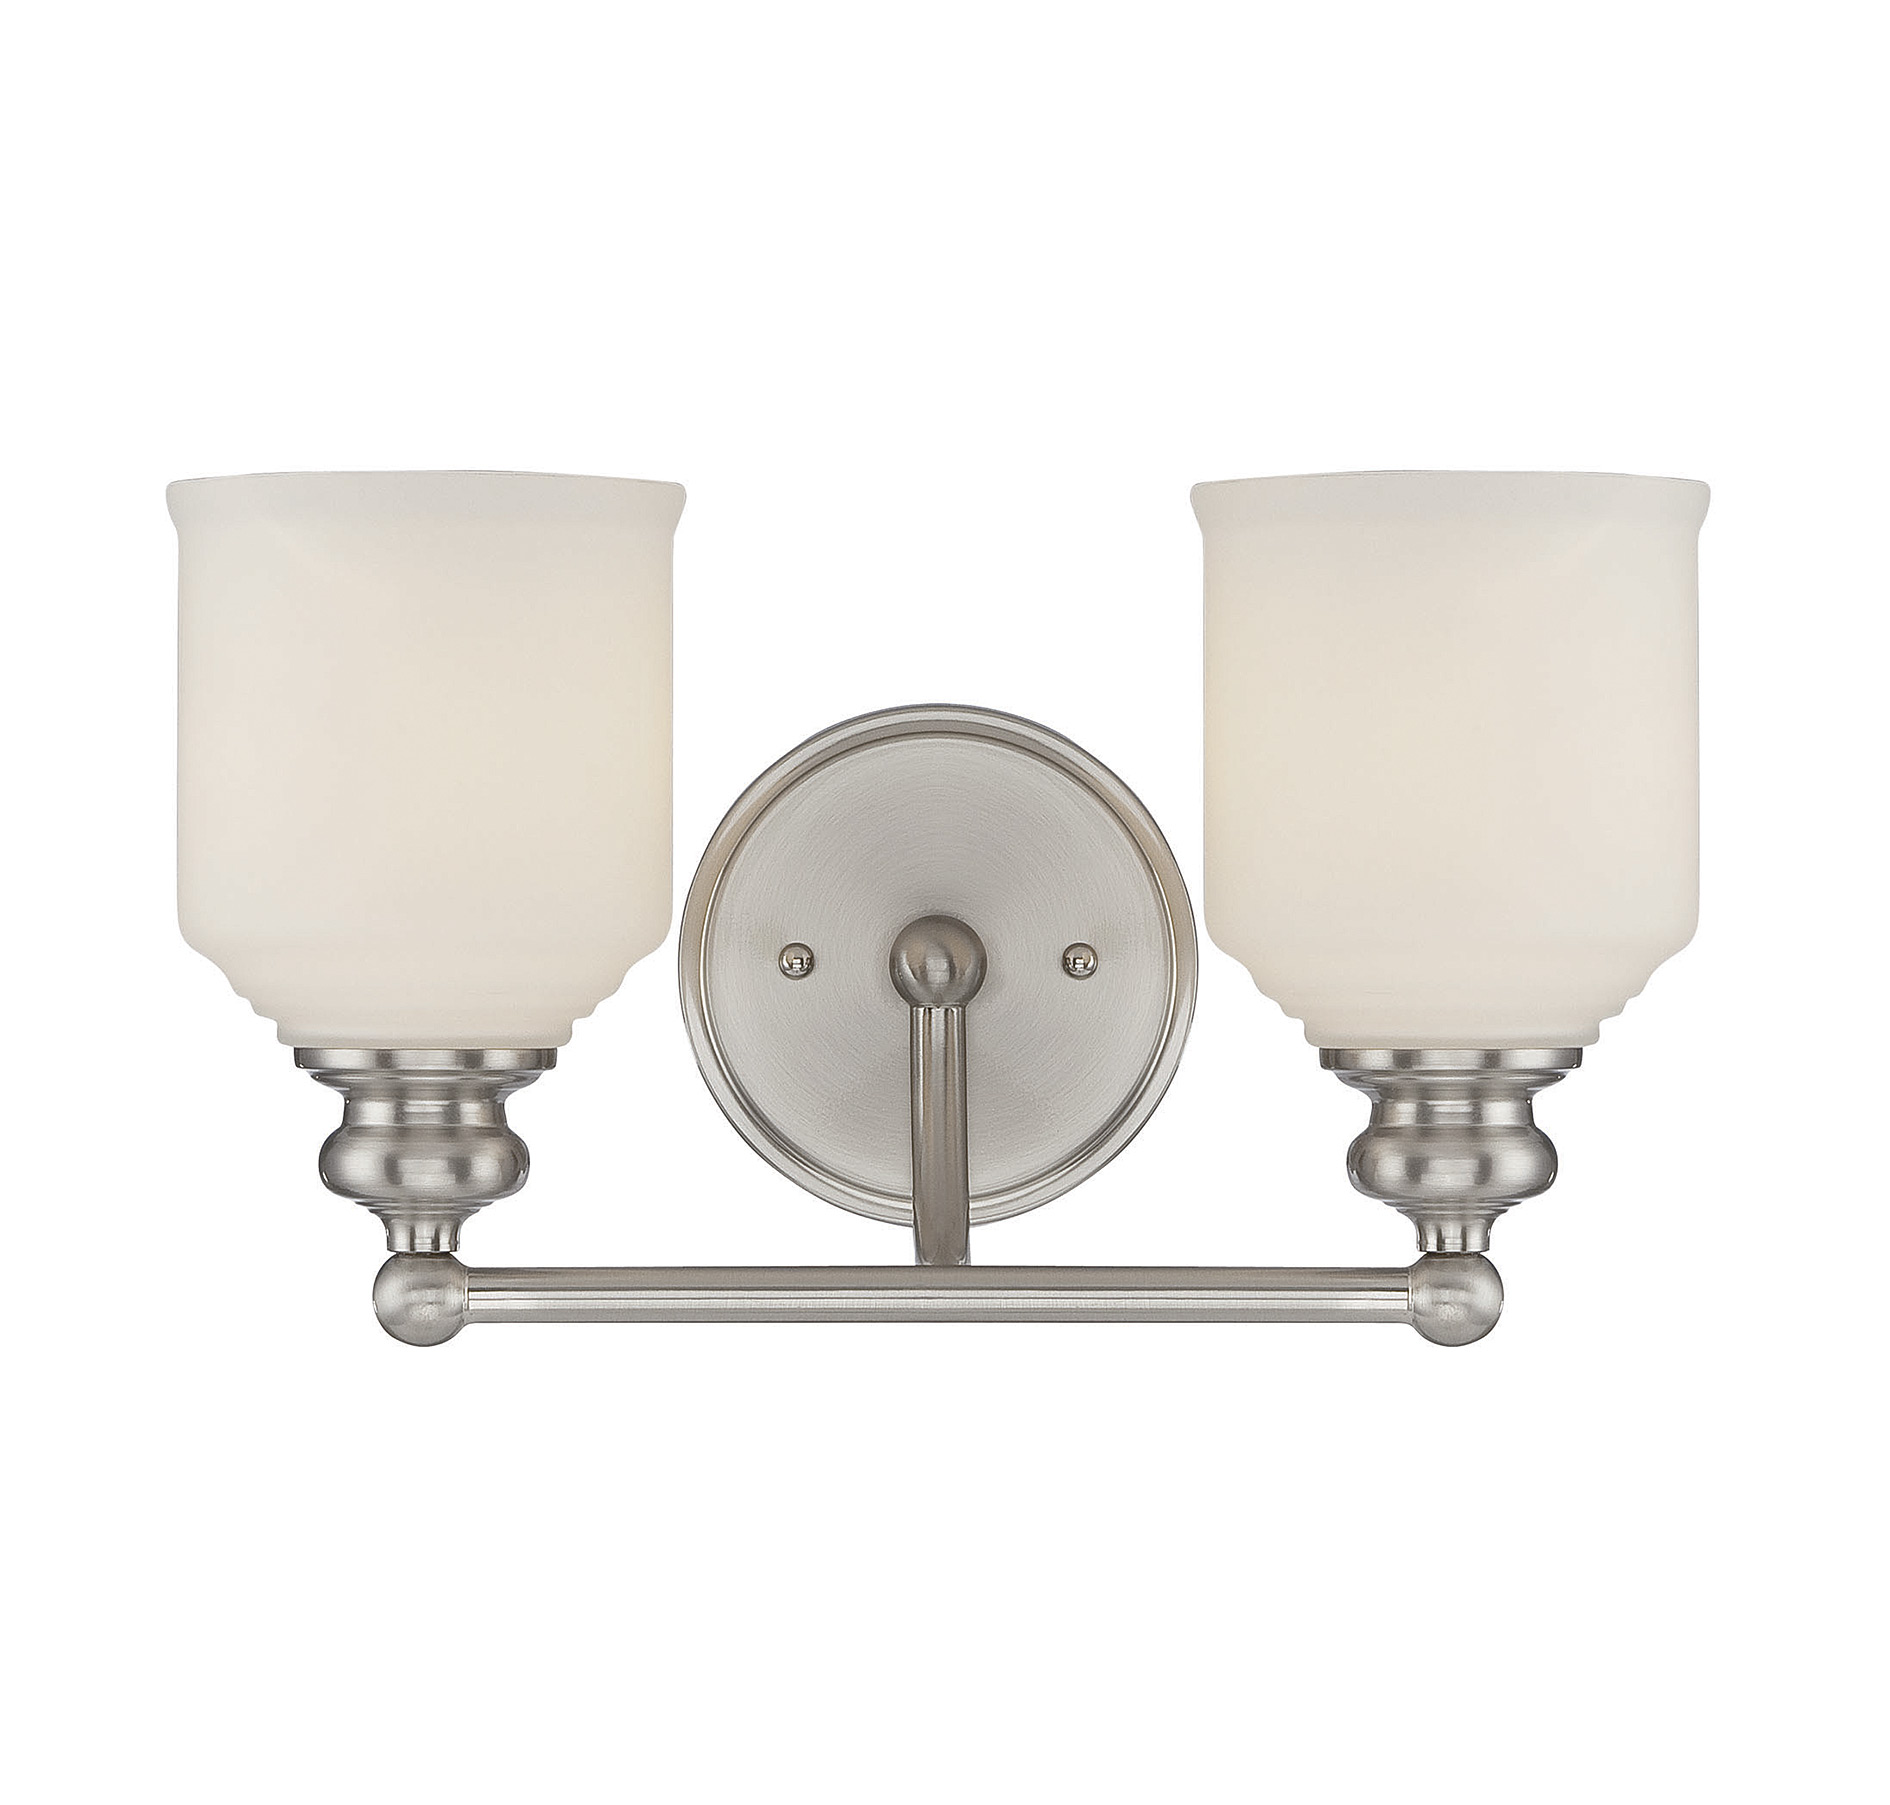 Melrose Bathroom Vanity Light By Savoy House SN - Savoy bathroom light fixtures